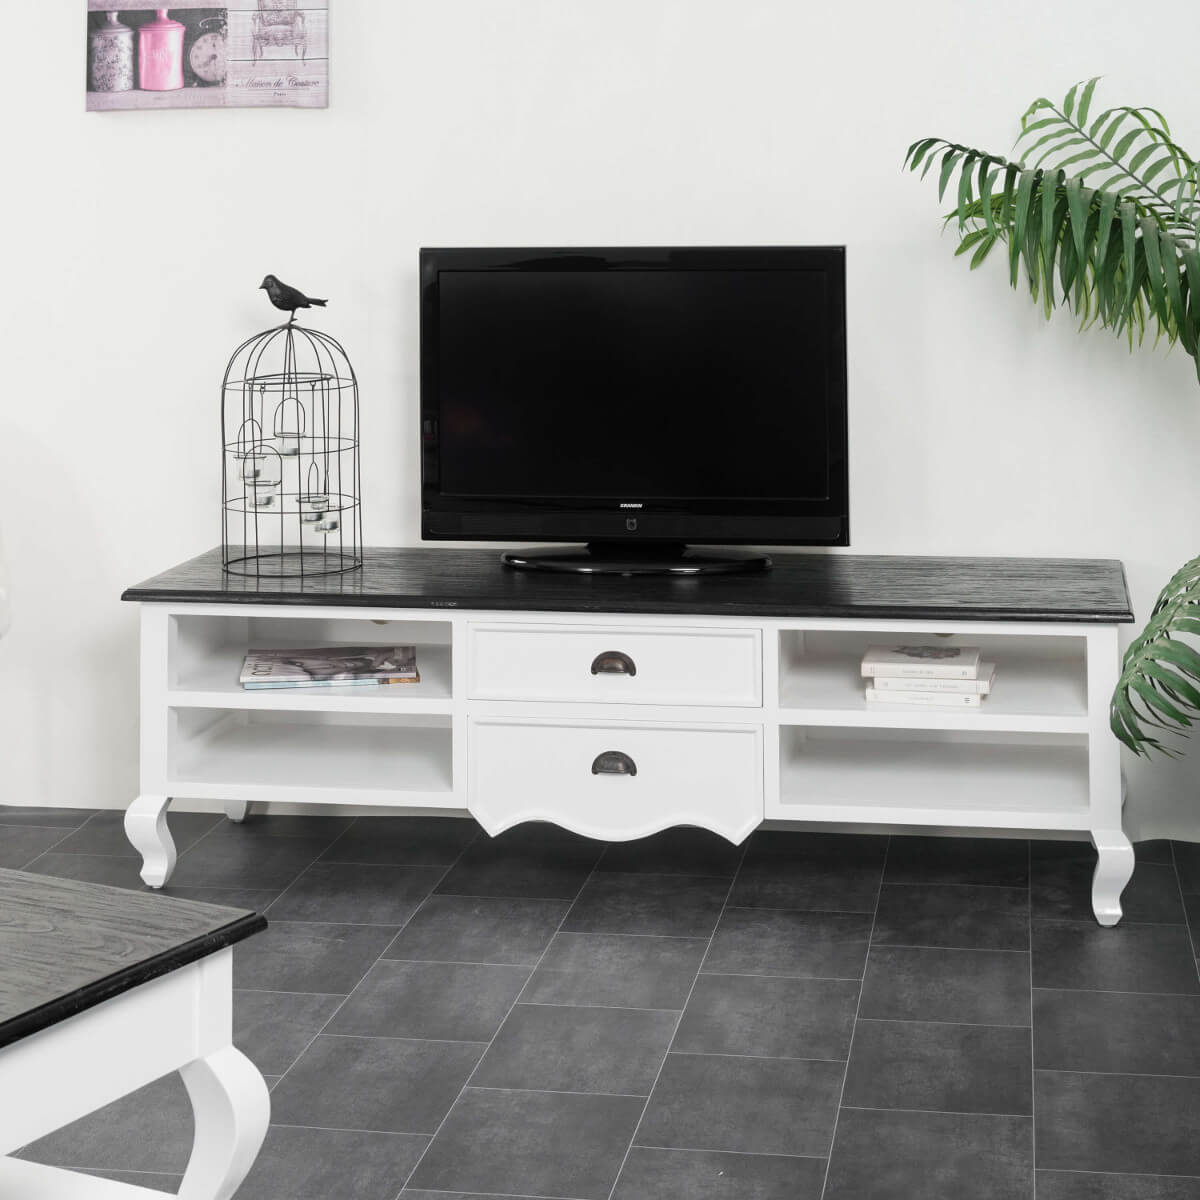 Meuble Tv Baroque Meuble Tv Acajou Blanc Rectangle Idao 170 Cm # Table Basse Pour Televiseur